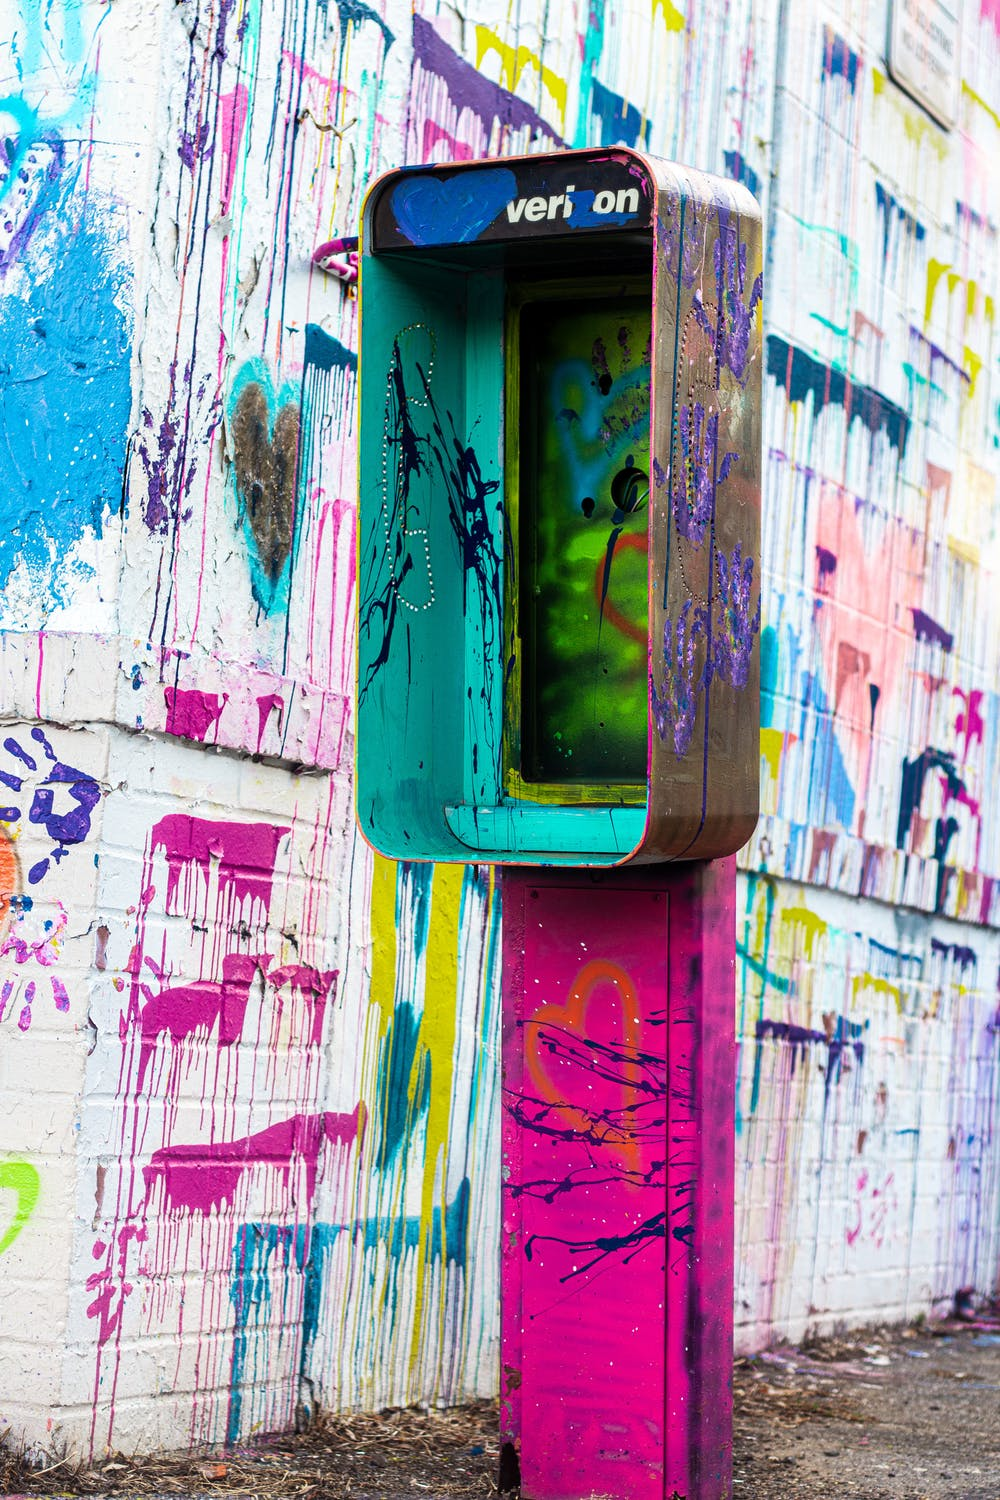 graffiti telephone booth with no phone